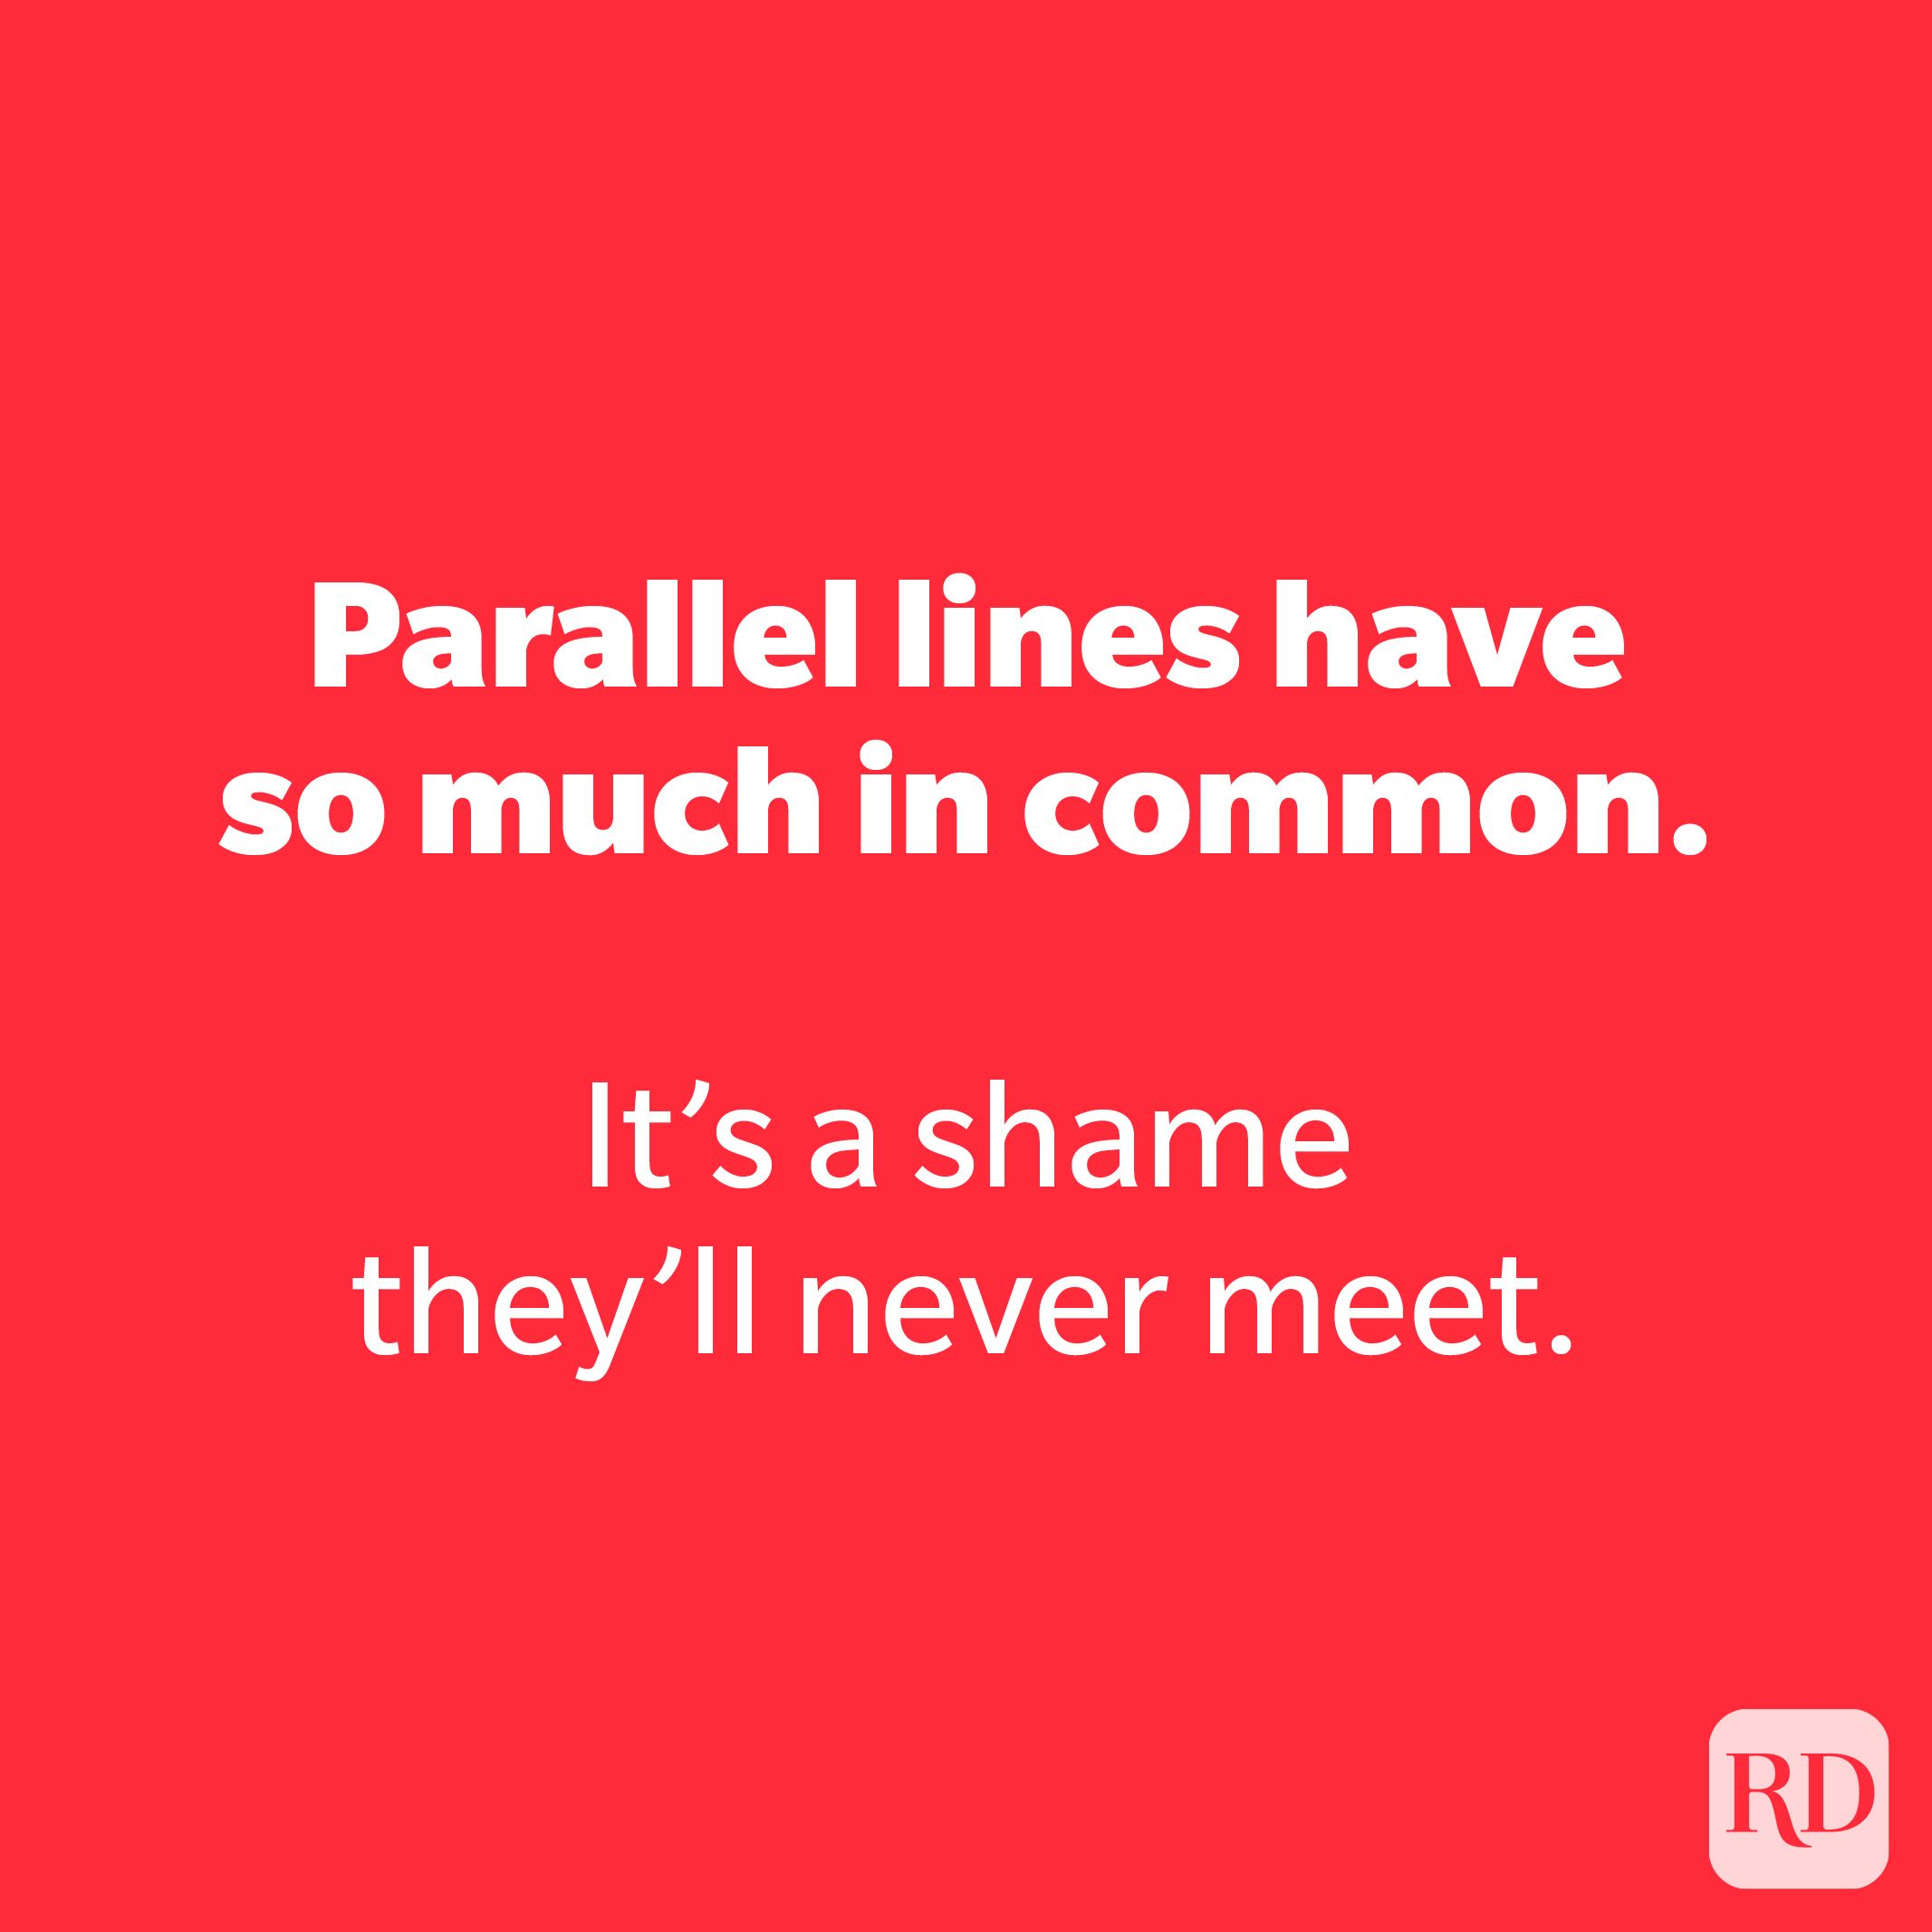 Parallel lines have so much in common.